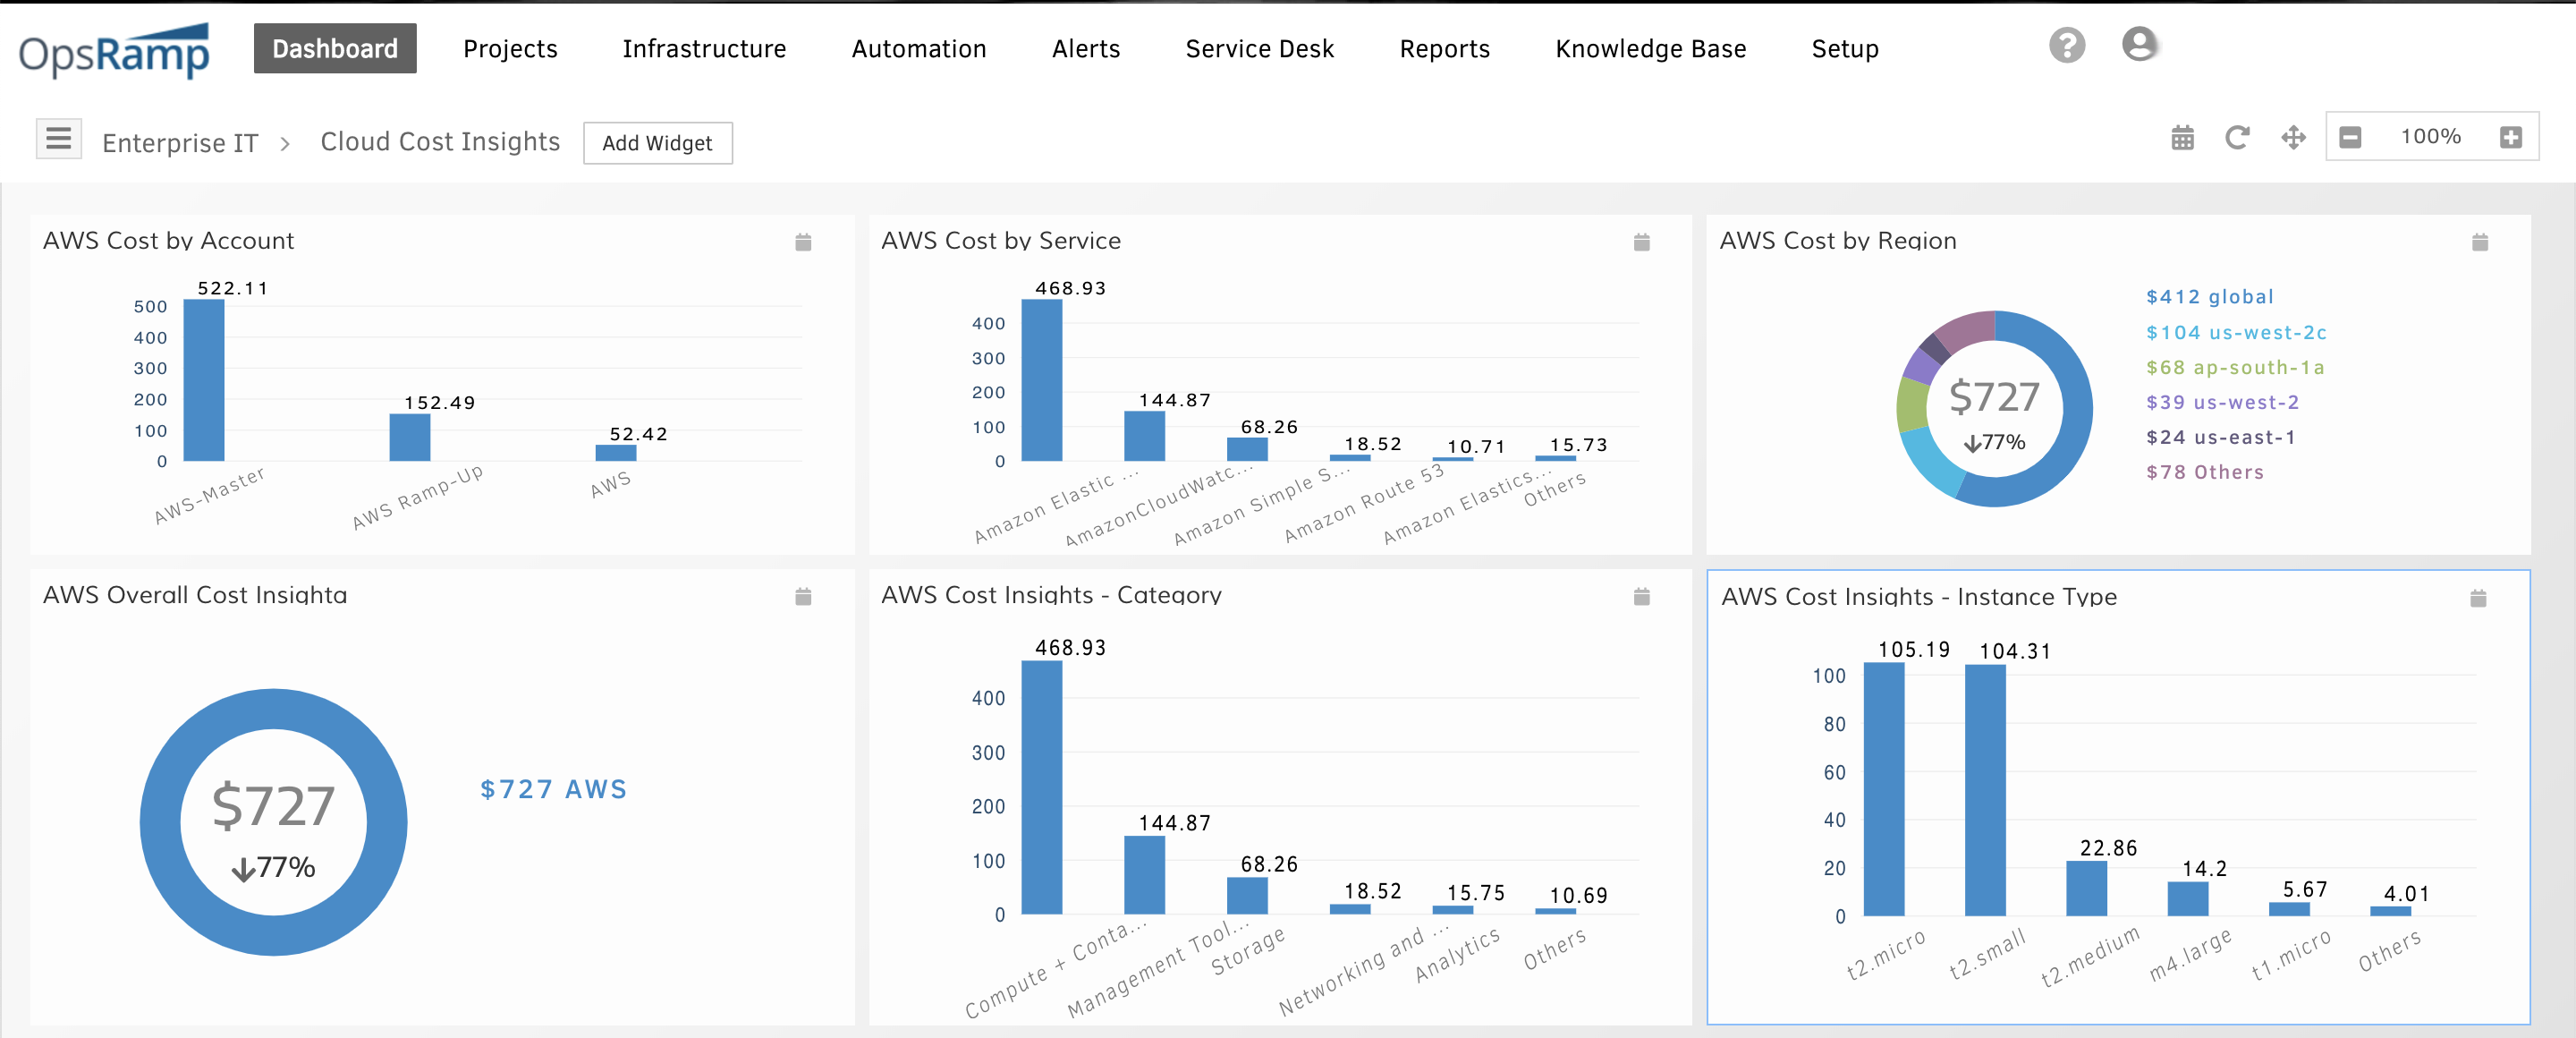 Monitor, Analyze, Optimize And Scale Your AWS Cloud